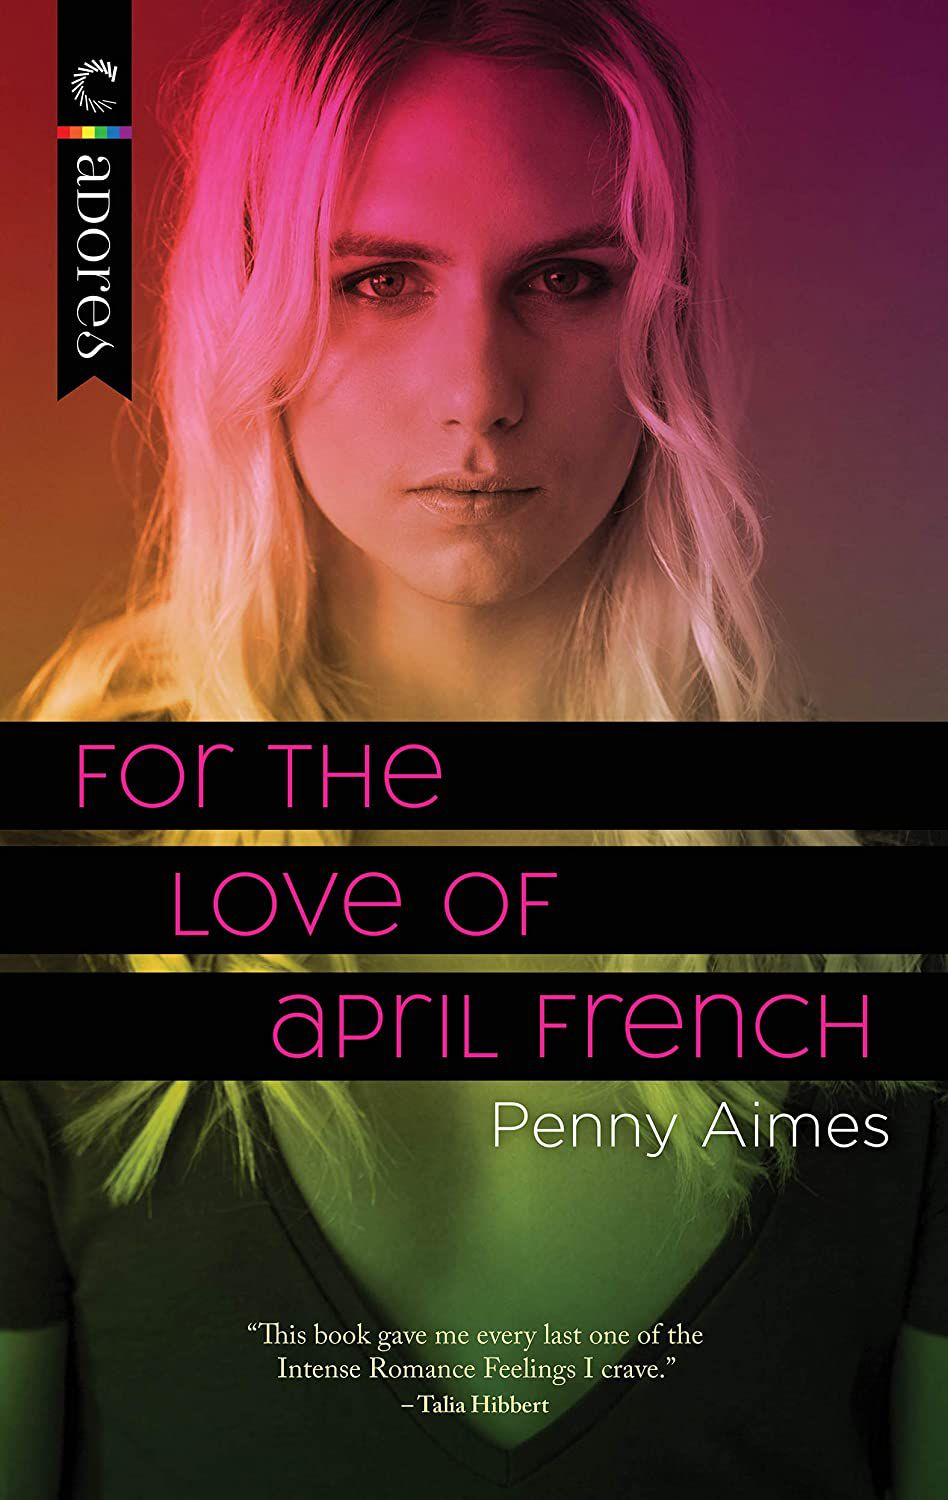 For the Love of April French by Penny Acmes